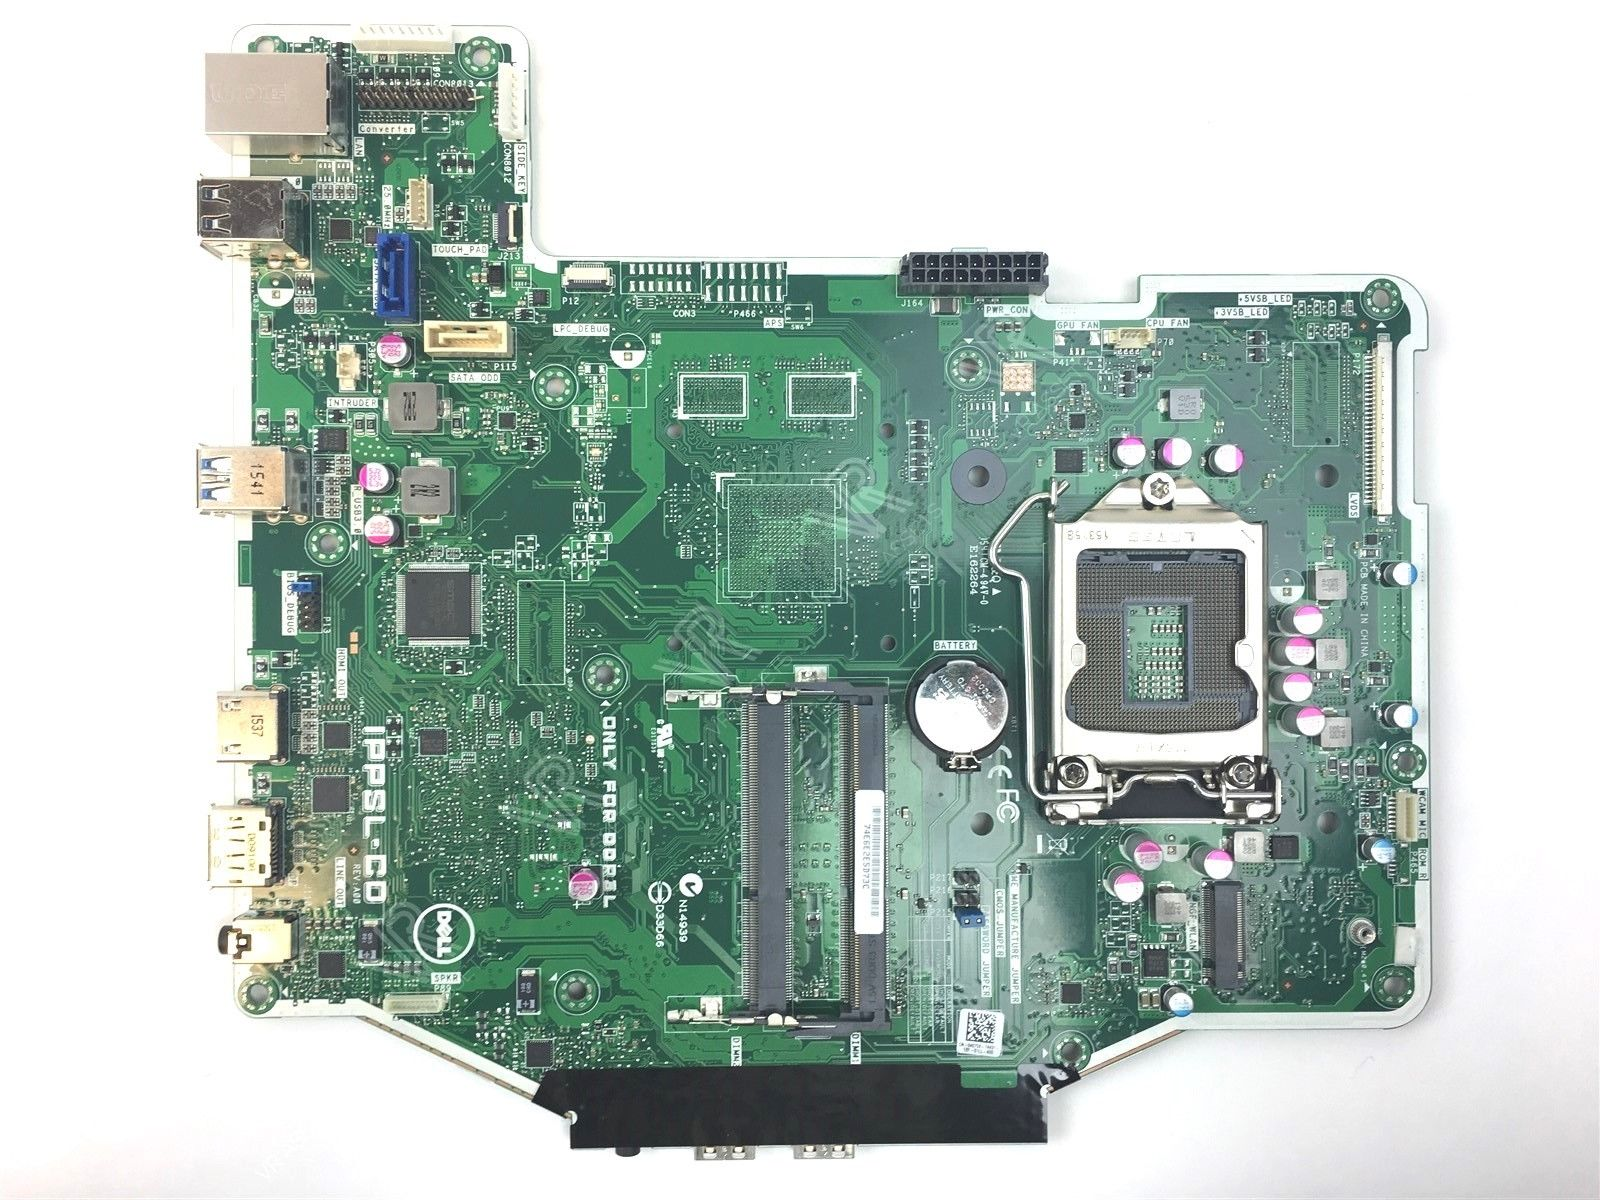 Genuine Dell Optiplex 3240 AIO Desktop Intel Motherboard IPPSL-C0 4075X 04075X